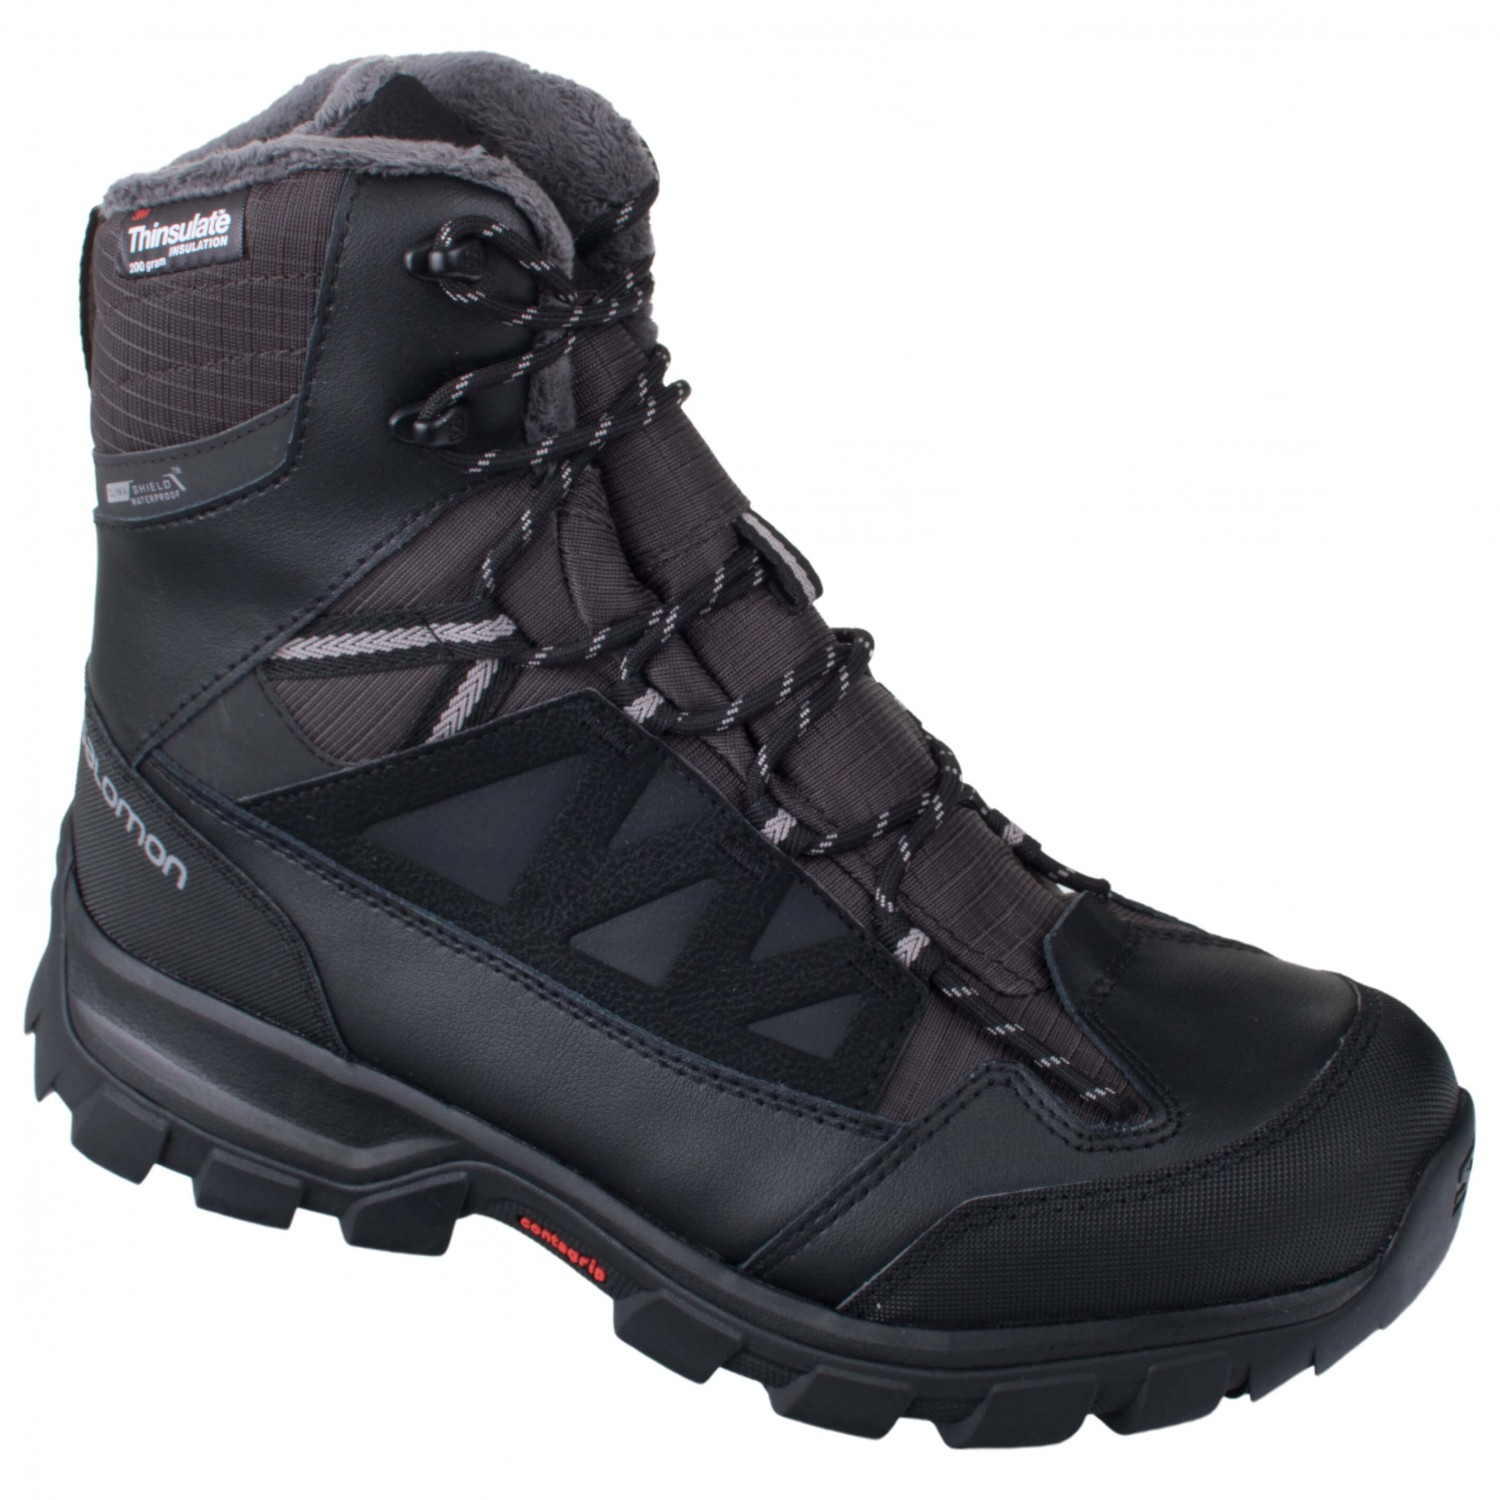 buy popular a92e3 1ff9f Salomon - Chalten TS CSWP - Winterschuhe